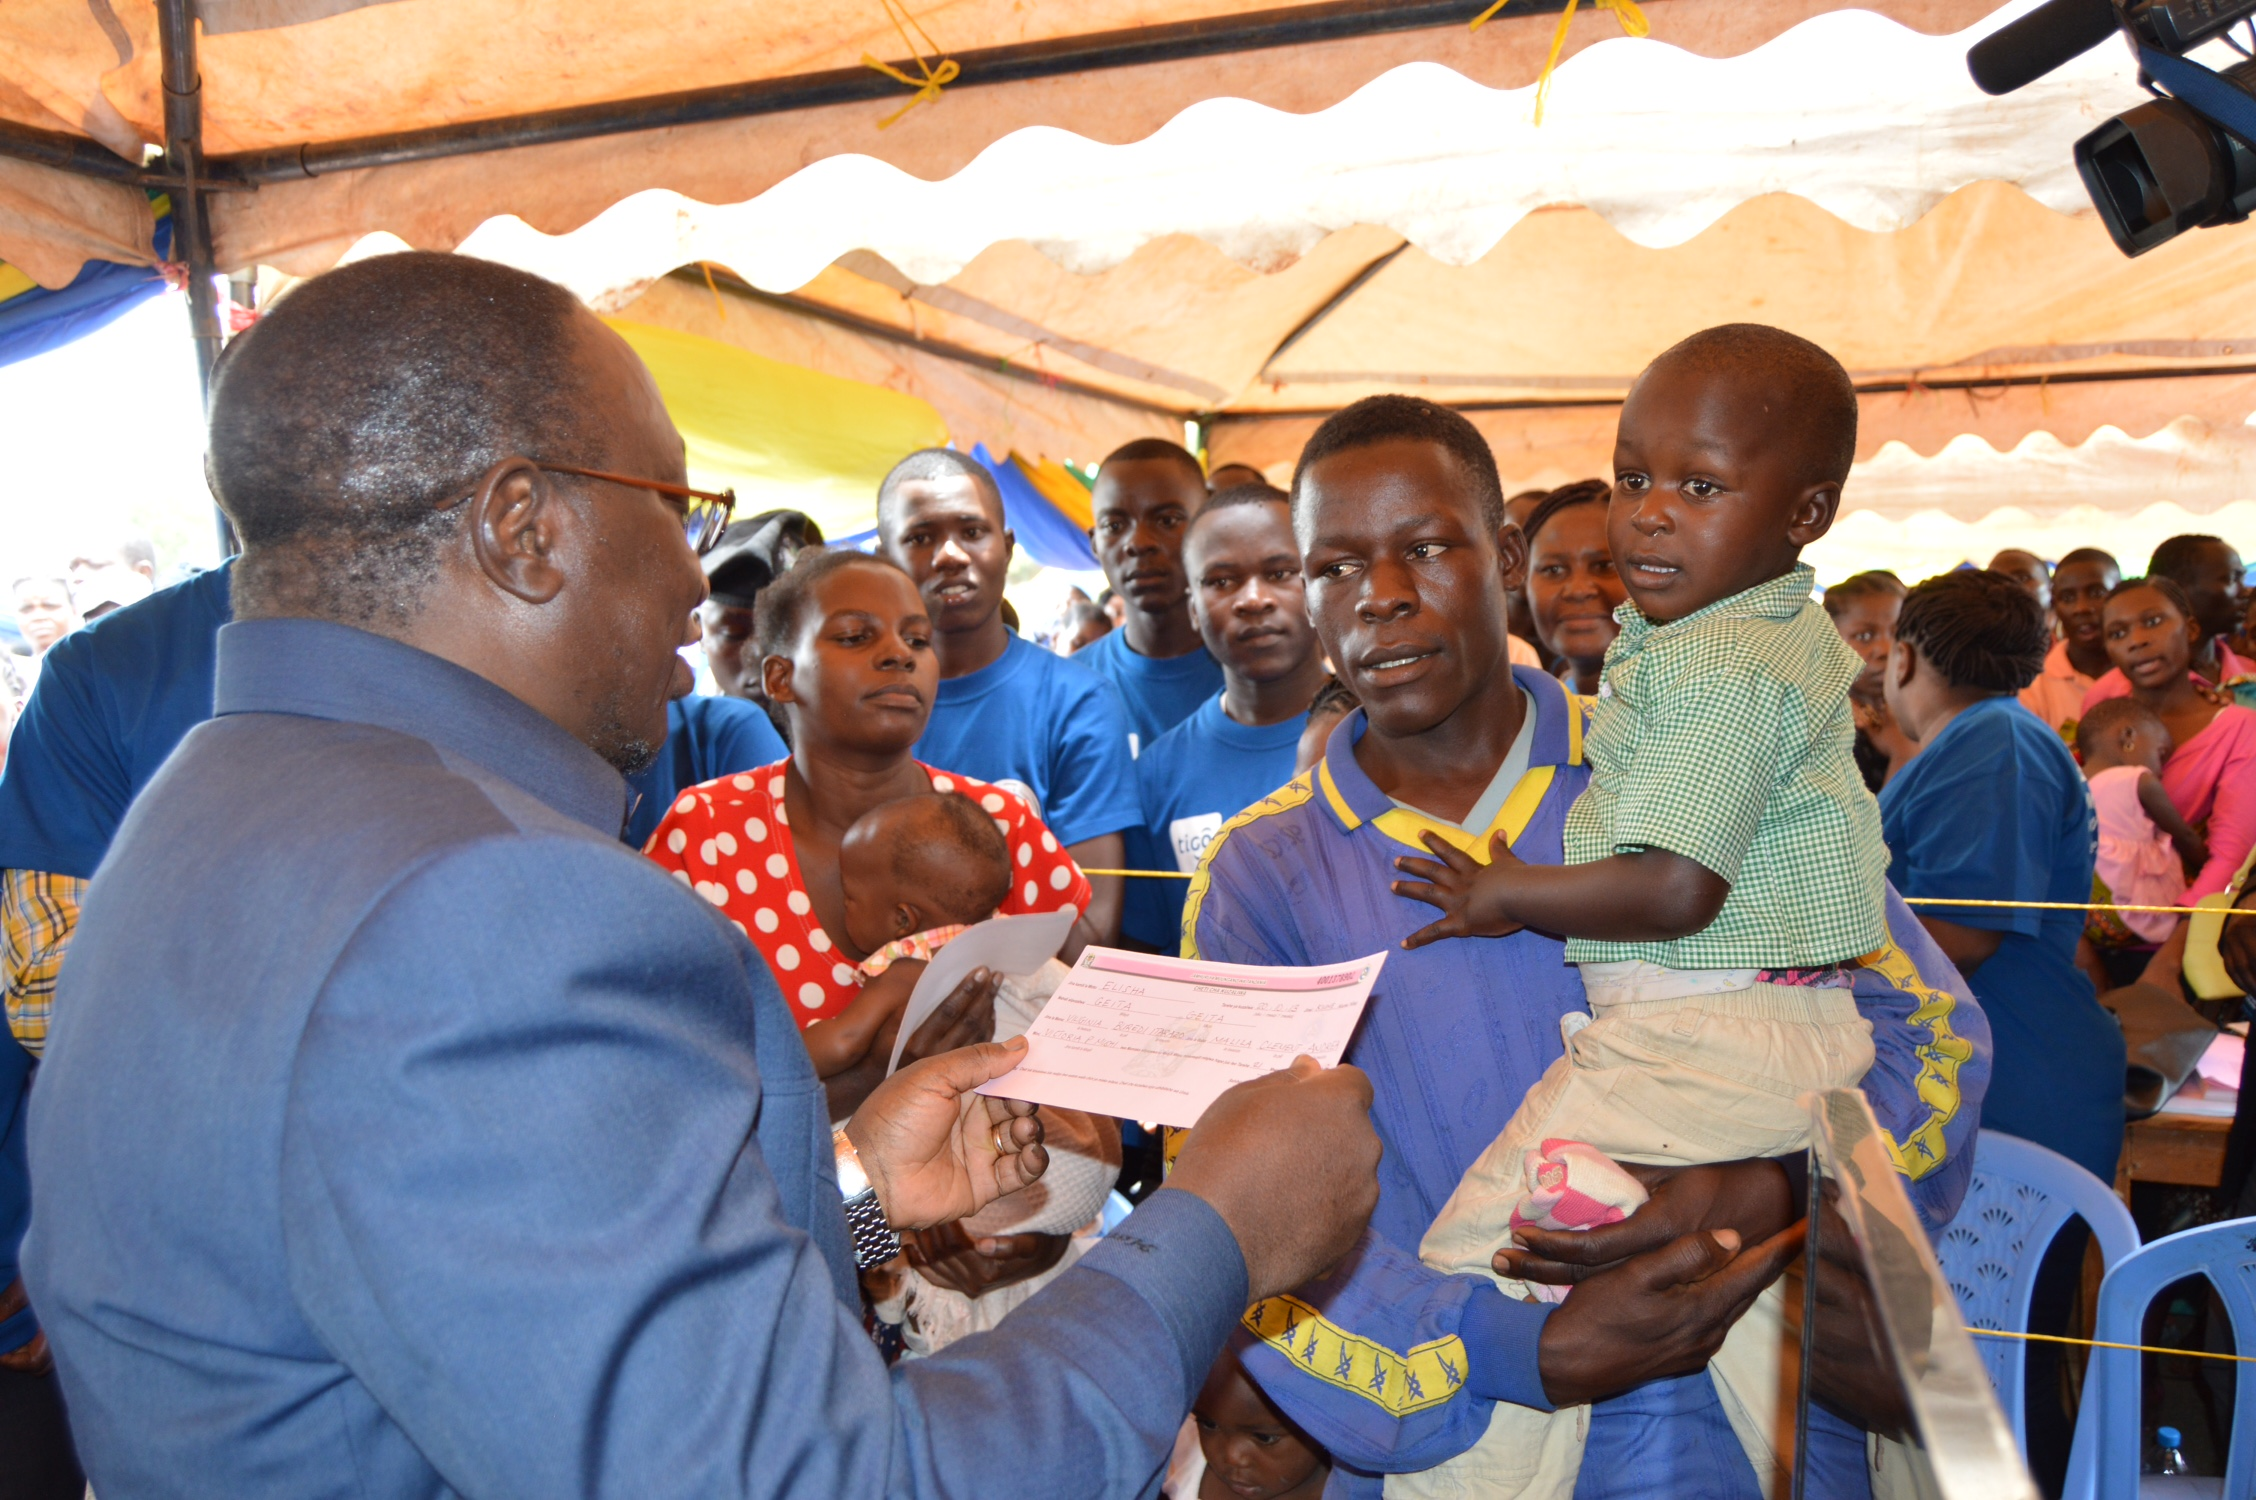 Tanzania's mobile registration program issues millions of birth certificates to children under the age of five each year